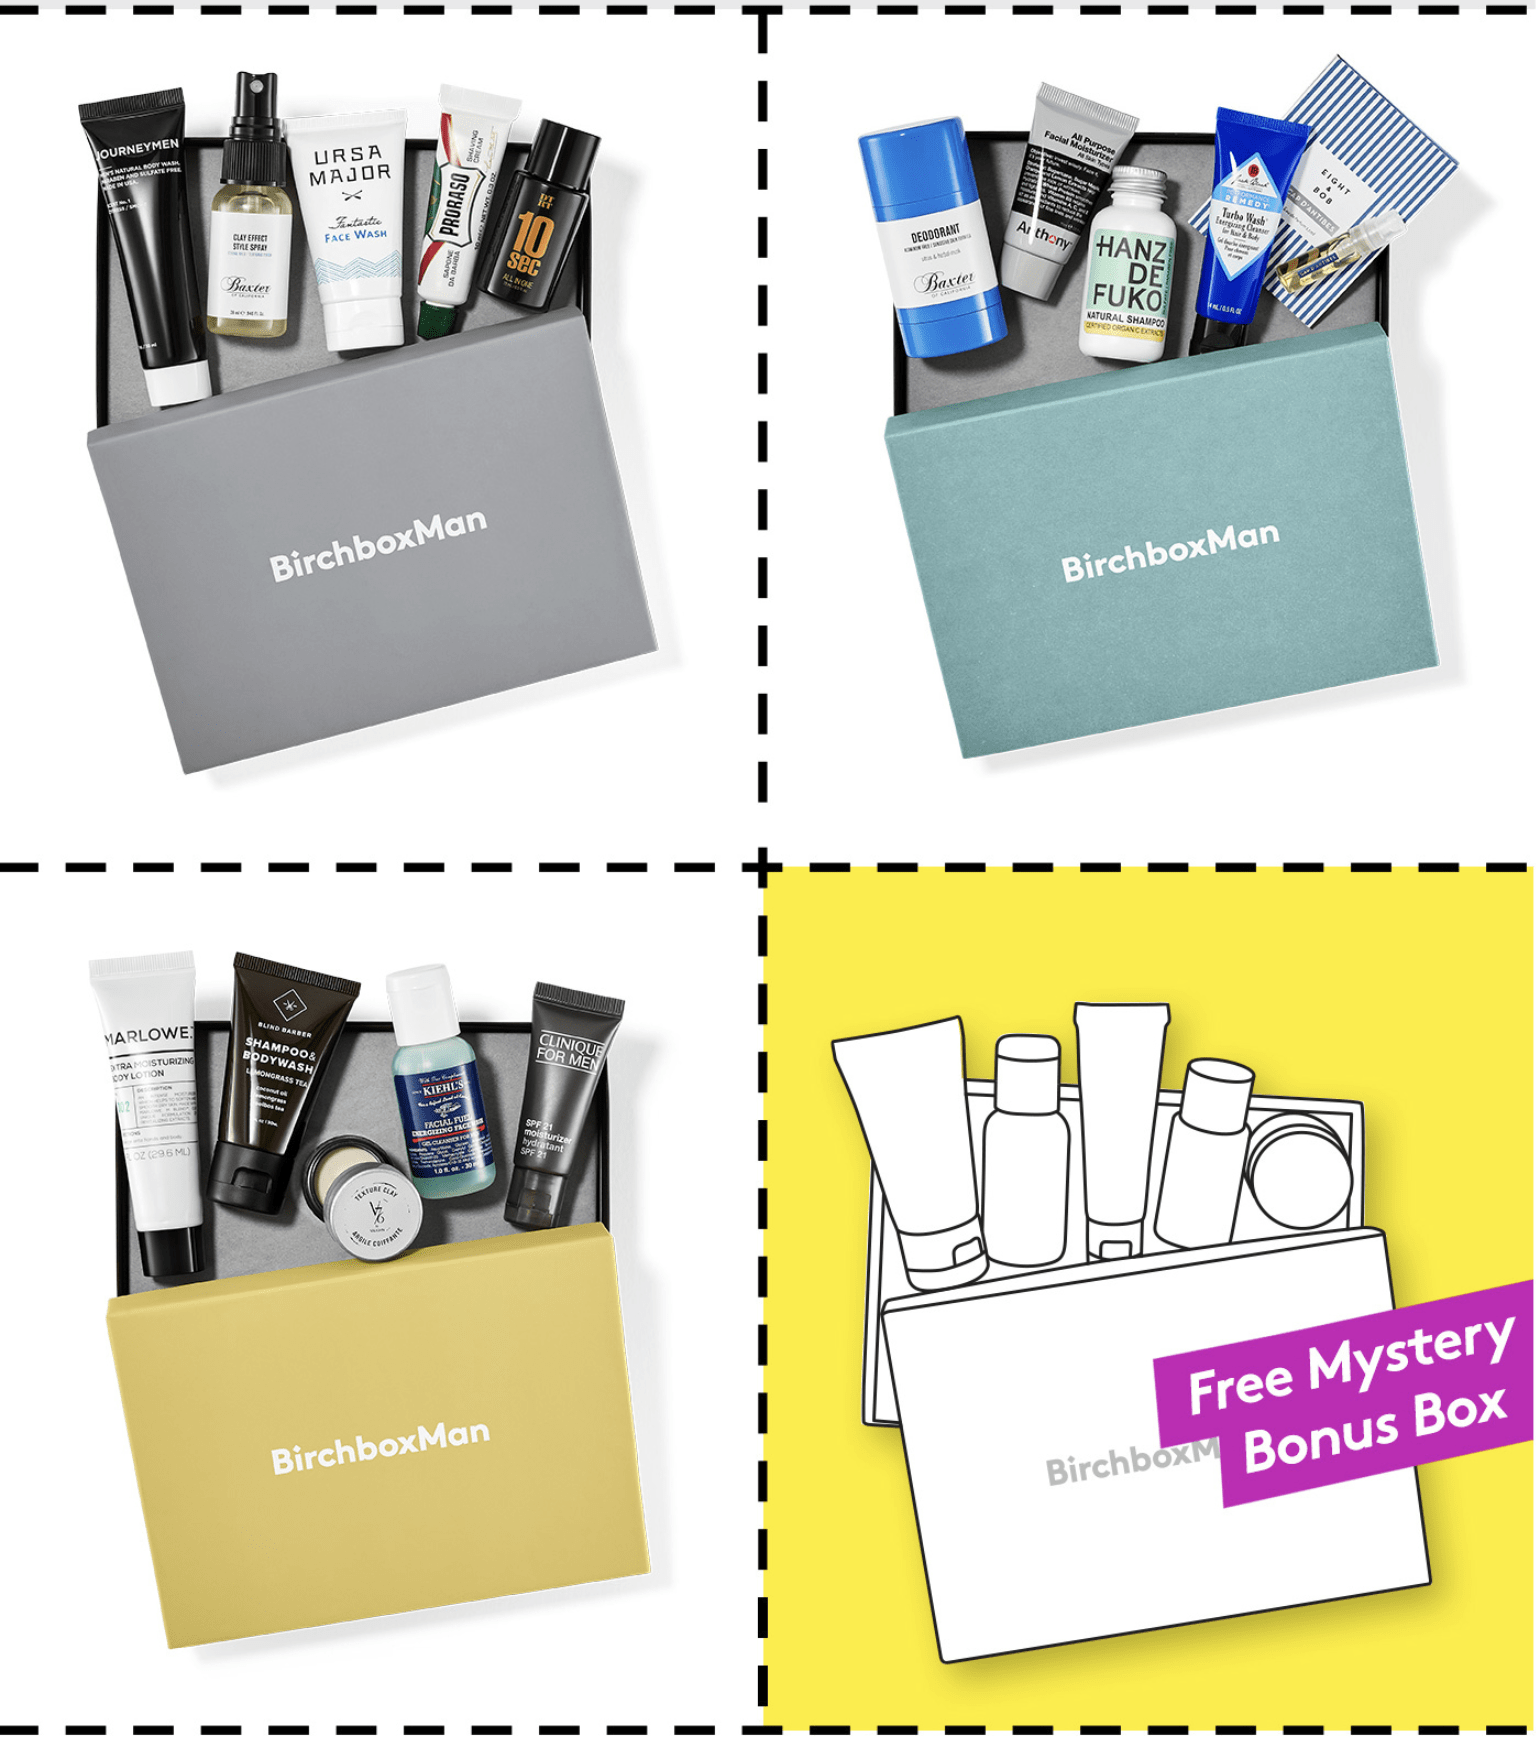 Birchbox Man Coupon: Free Extra Box with 3-Month Subscription!